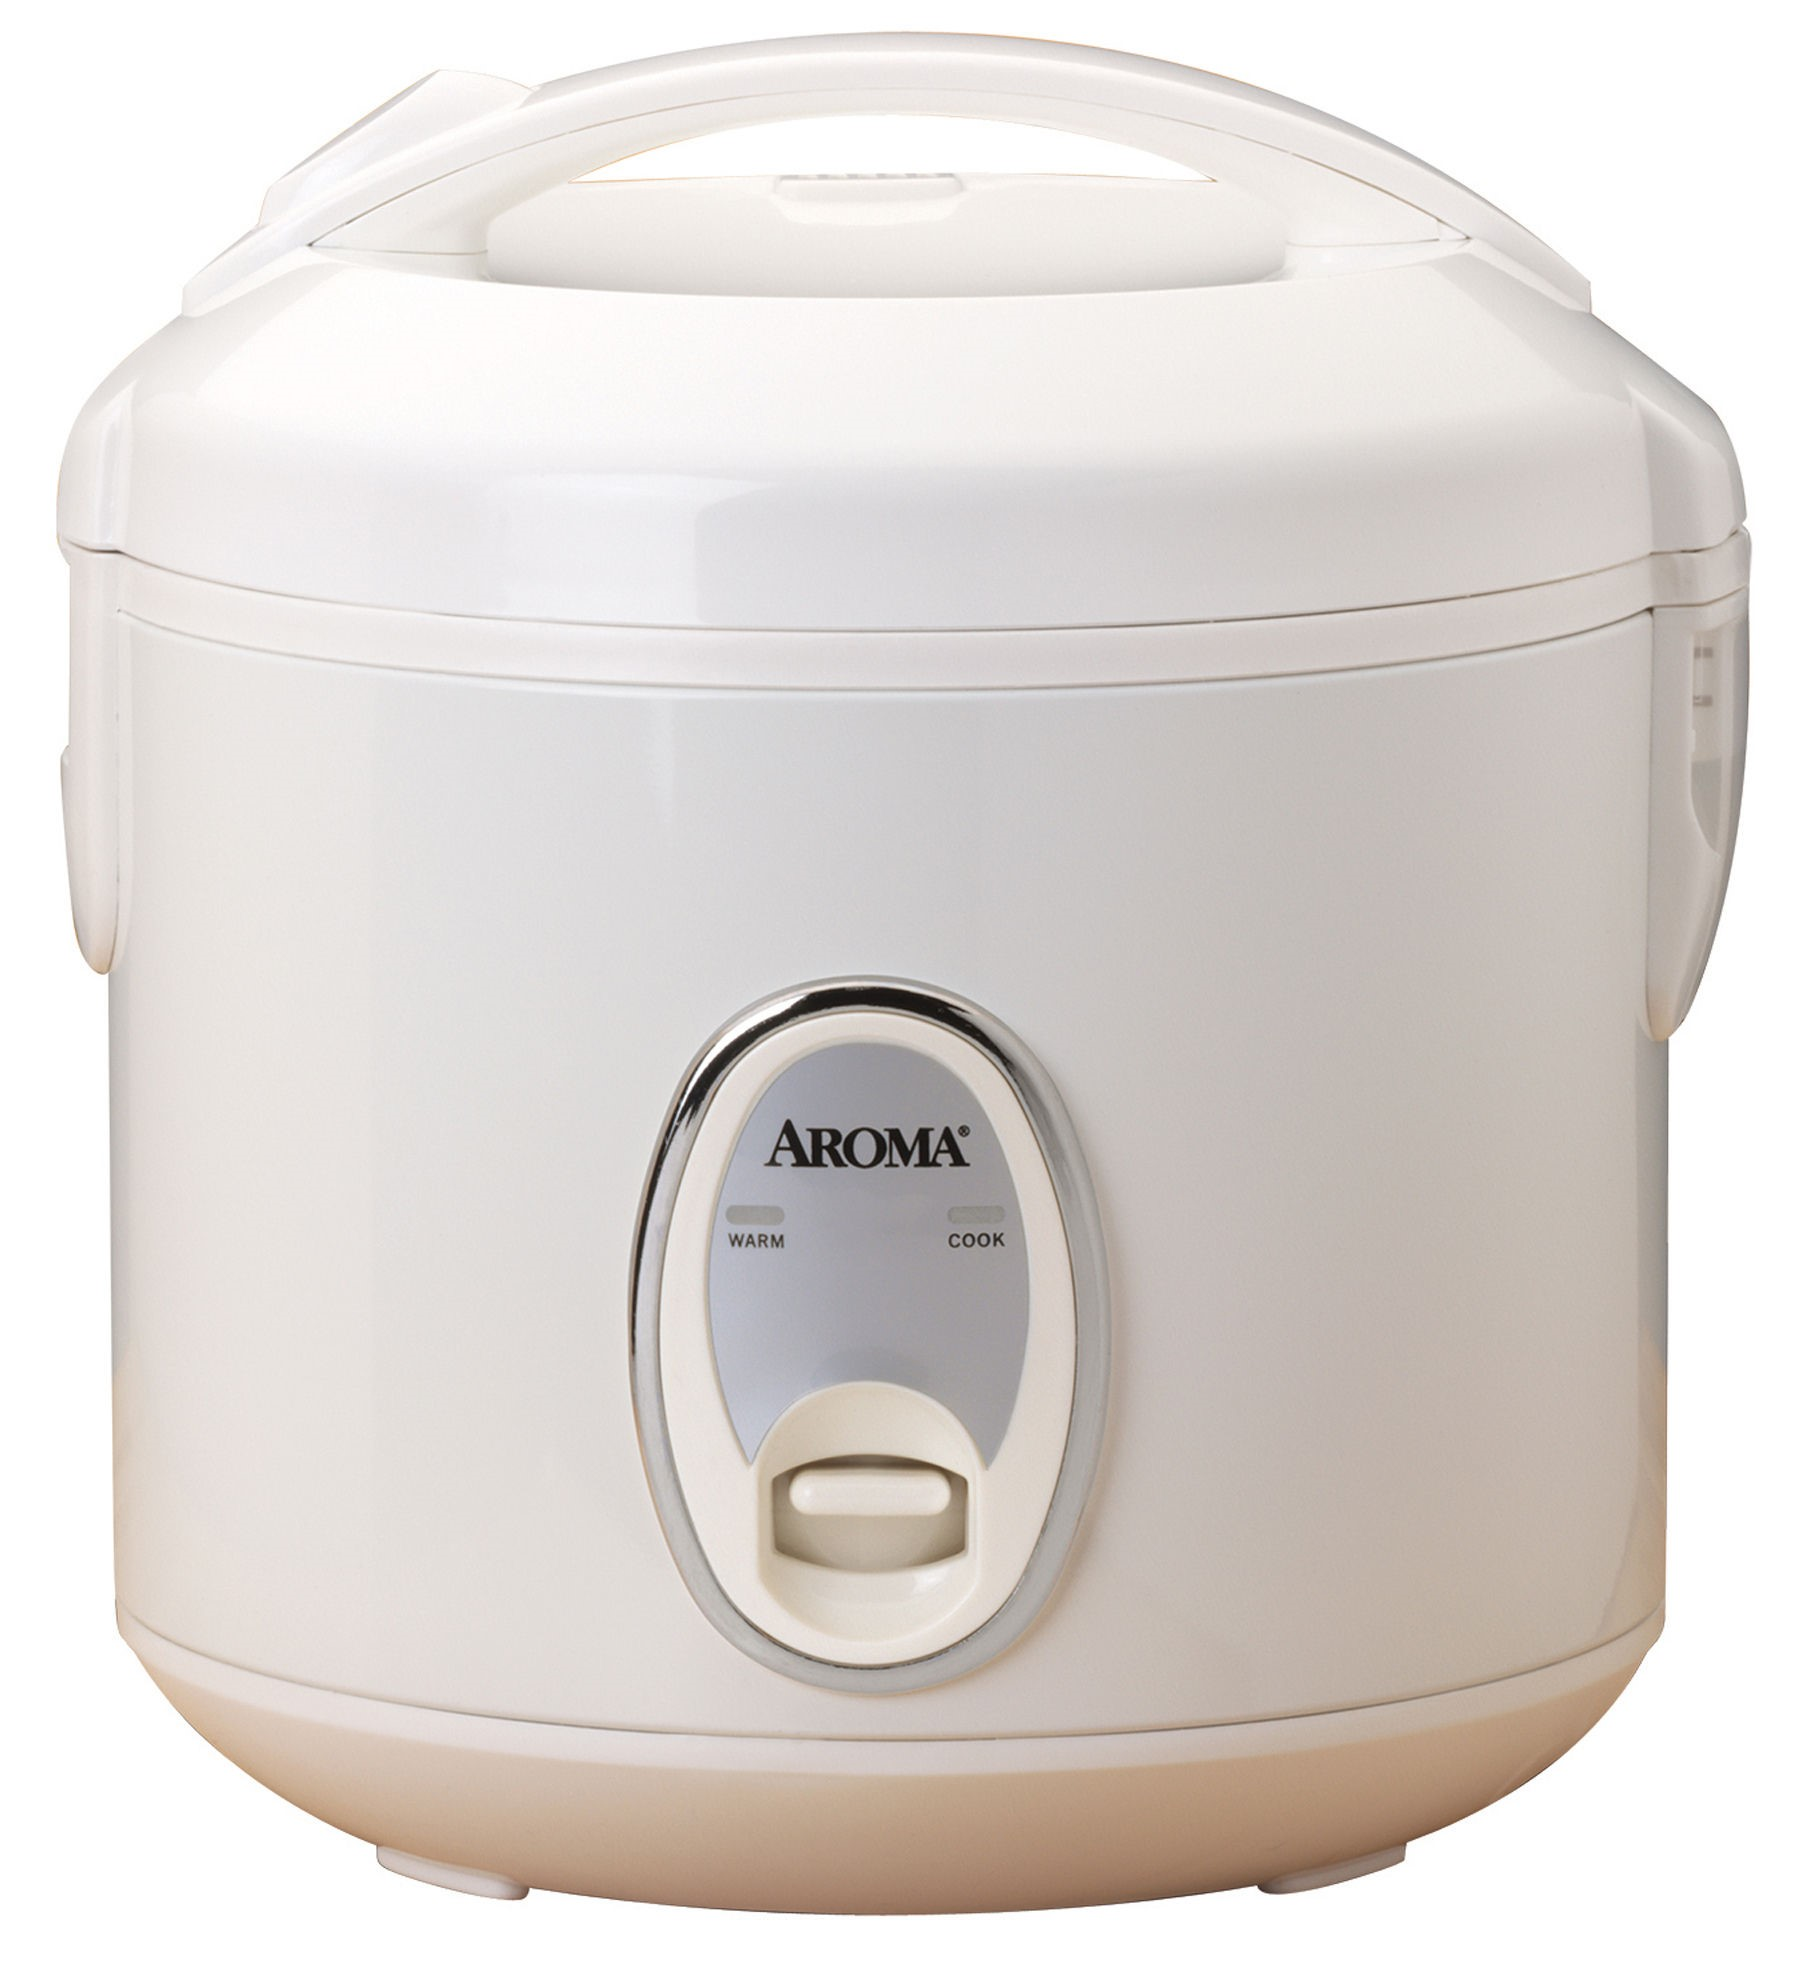 AROMA Rice Cookers & Steamers 4-Cup Cool Touch Rice Cooker White ARC-914S